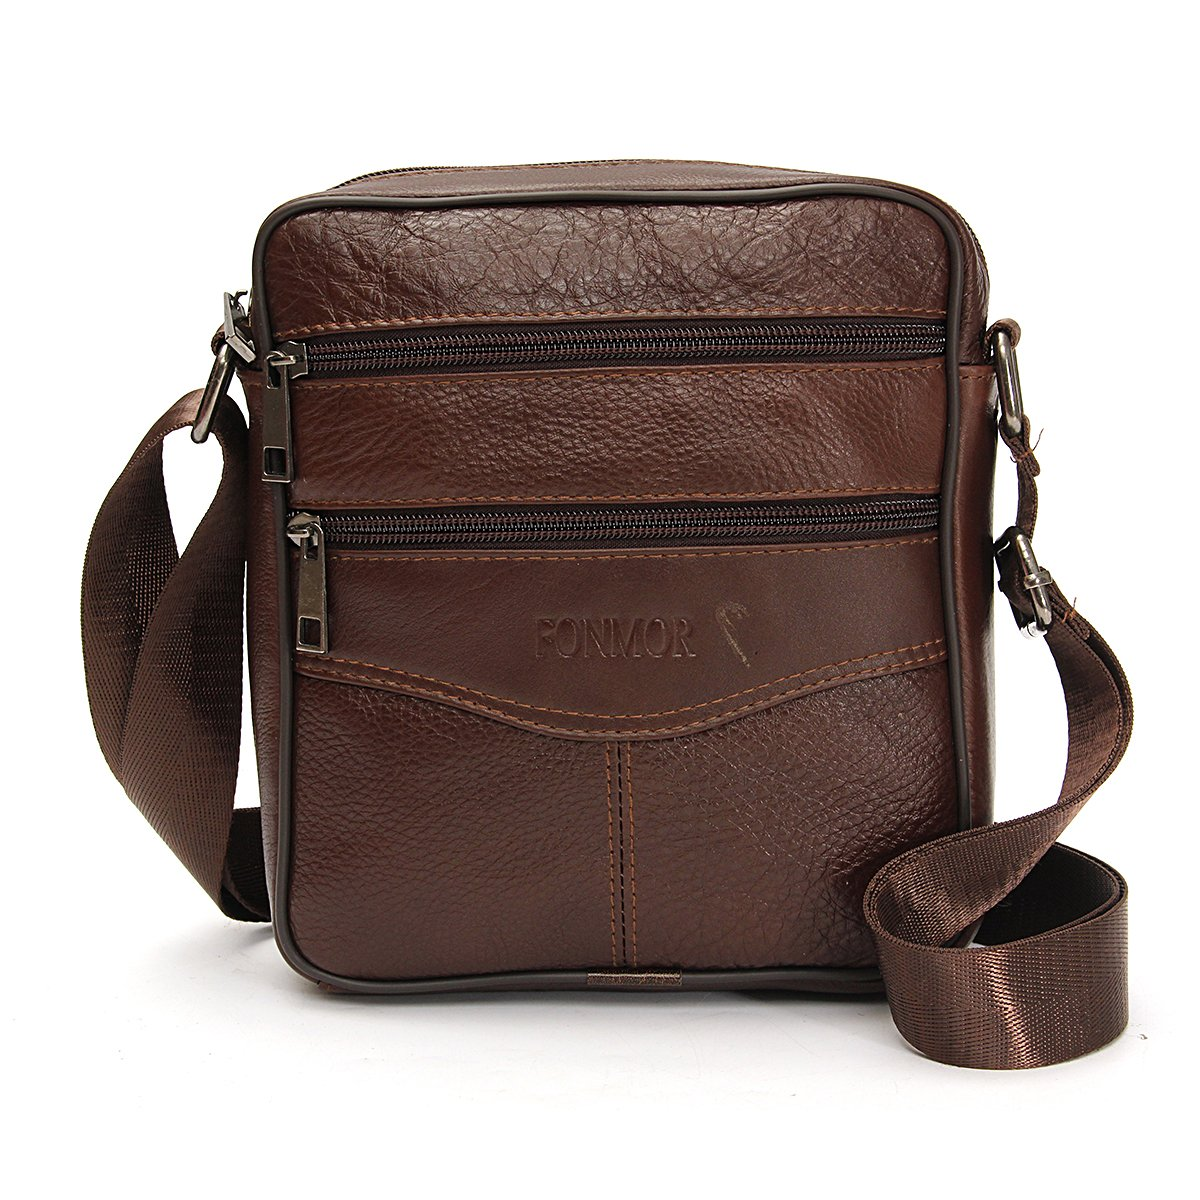 7a1d80d802 OURBAG Men Vintage Cowhide Leather Shoulder Messenger Bag Crossbody Small  Satchel Dark Brown  Amazon.co.uk  Luggage